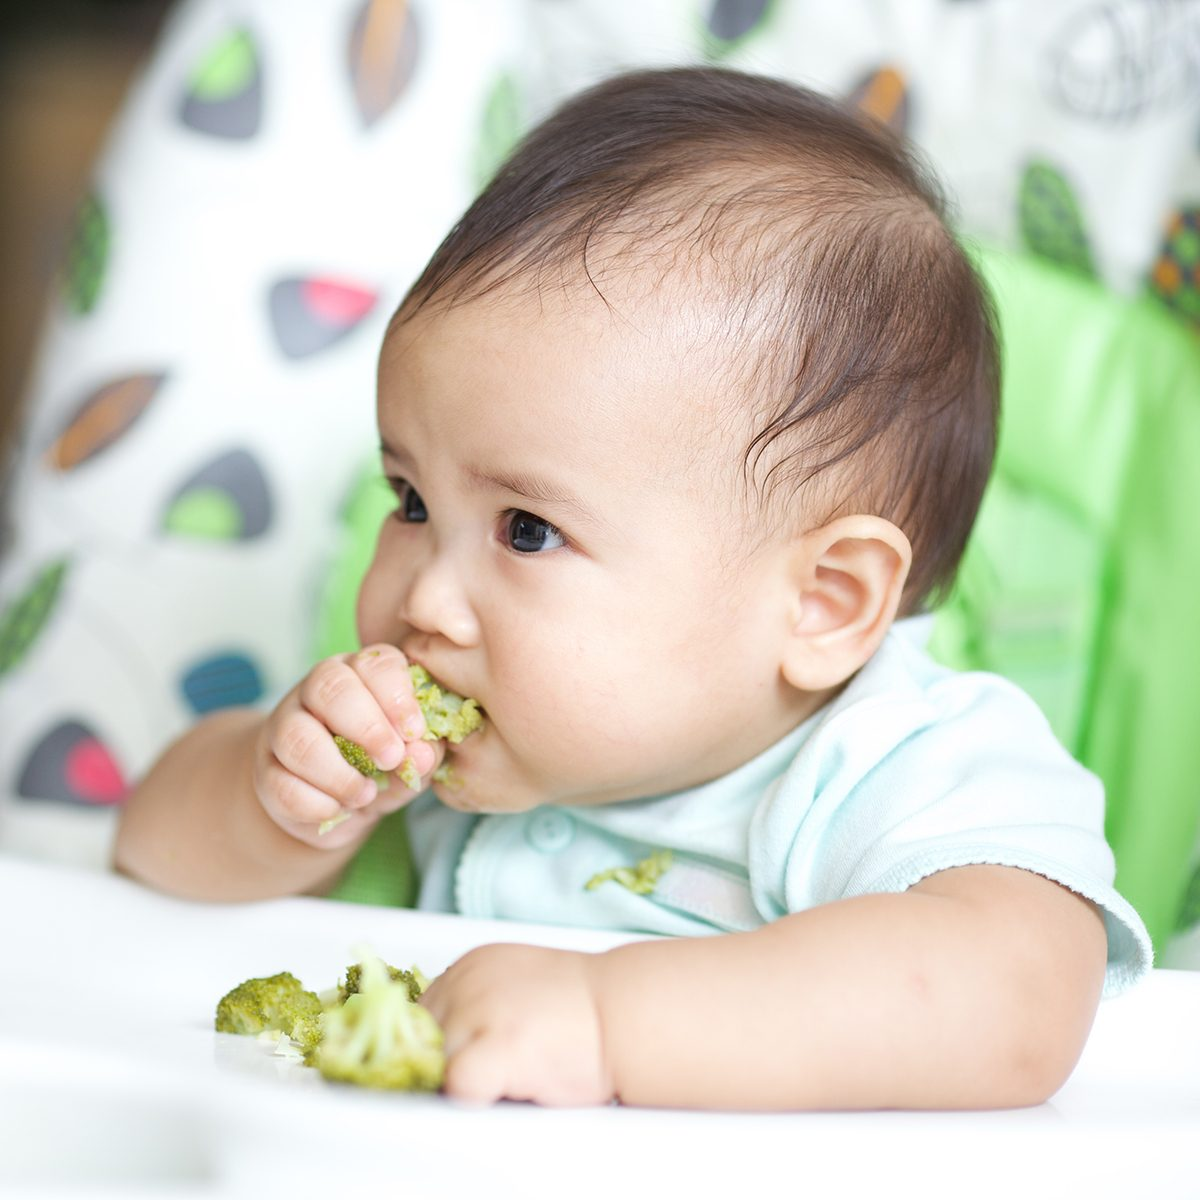 Baby Eating On Baby Chair